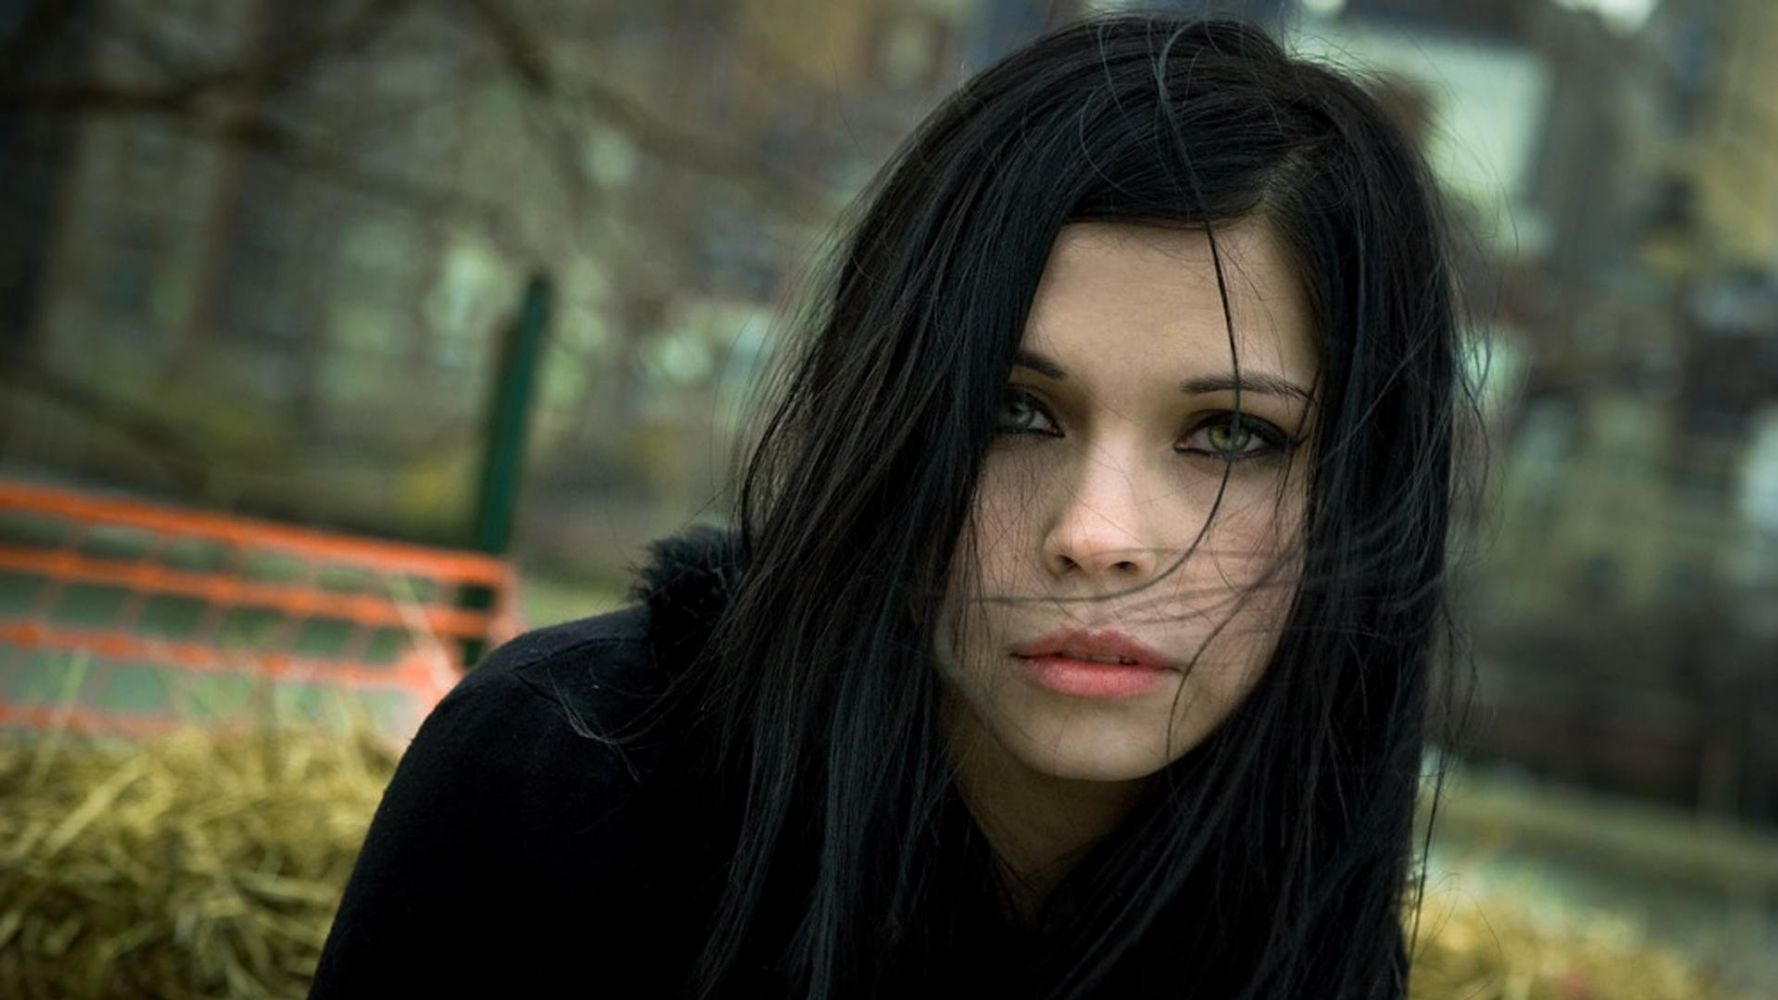 Pretty girls with black hair — pic 4